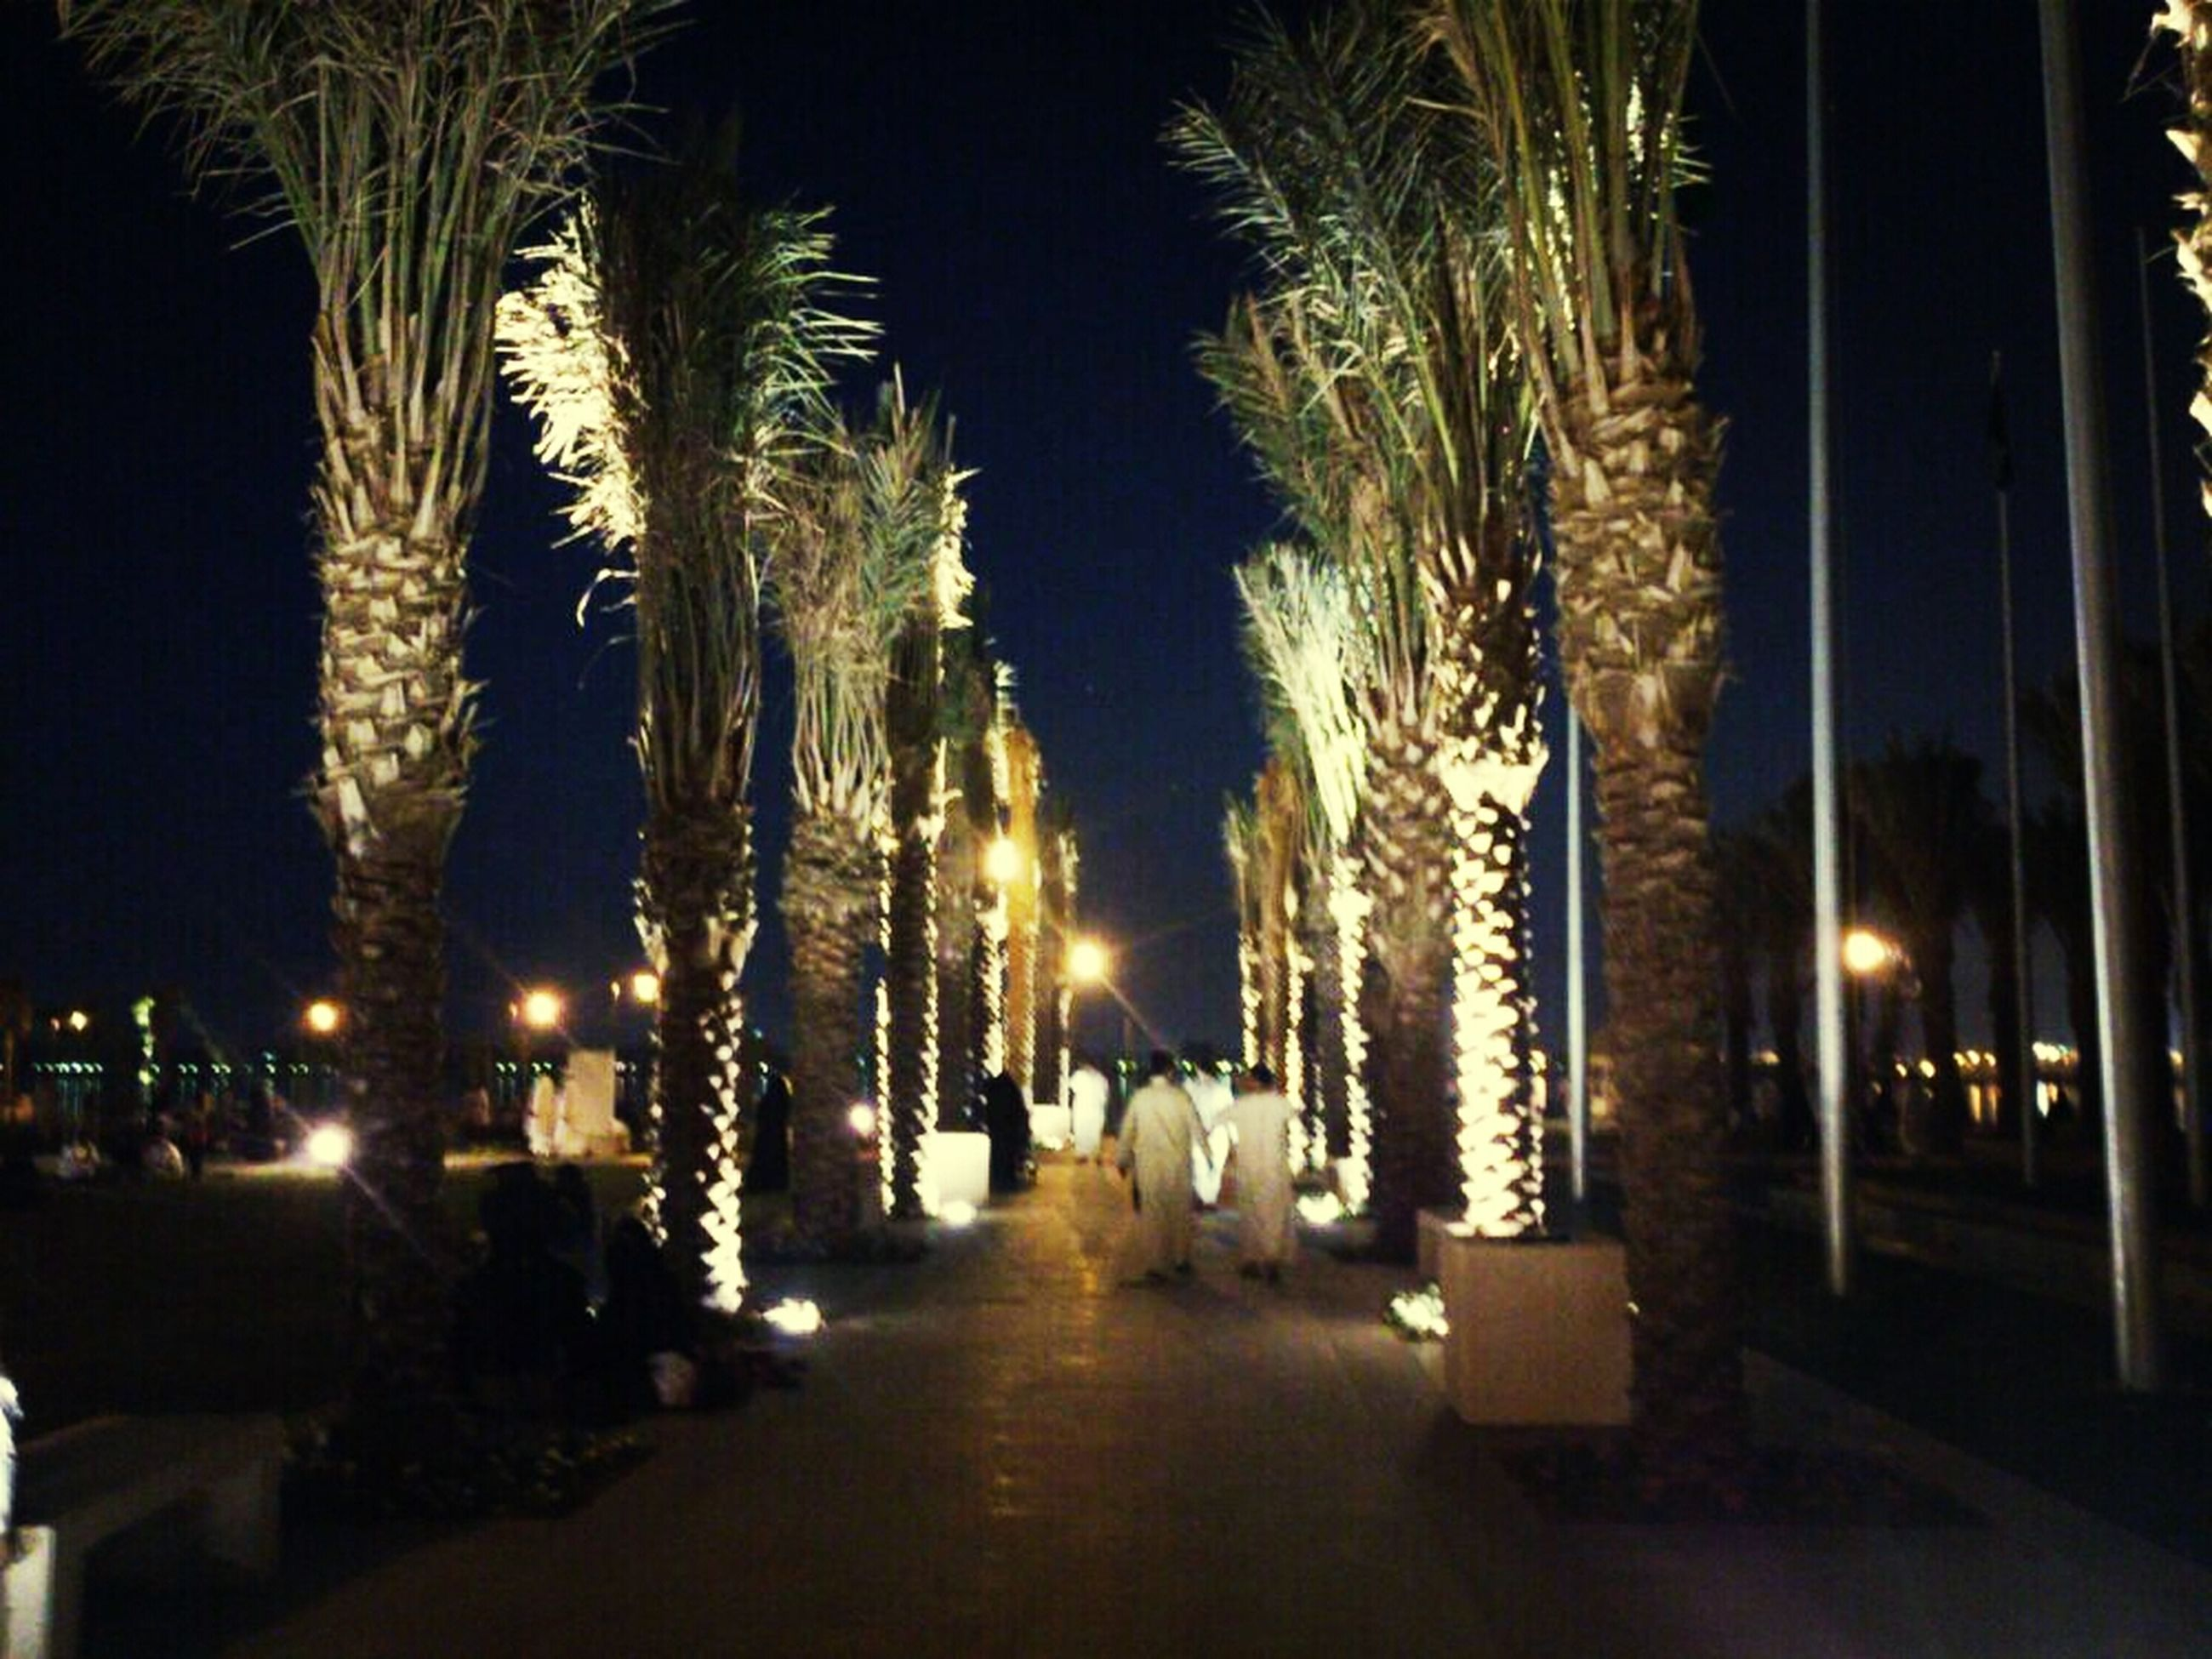 illuminated, night, the way forward, lighting equipment, street light, building exterior, architecture, street, built structure, tree, city, light - natural phenomenon, dark, diminishing perspective, road, glowing, outdoors, in a row, footpath, vanishing point